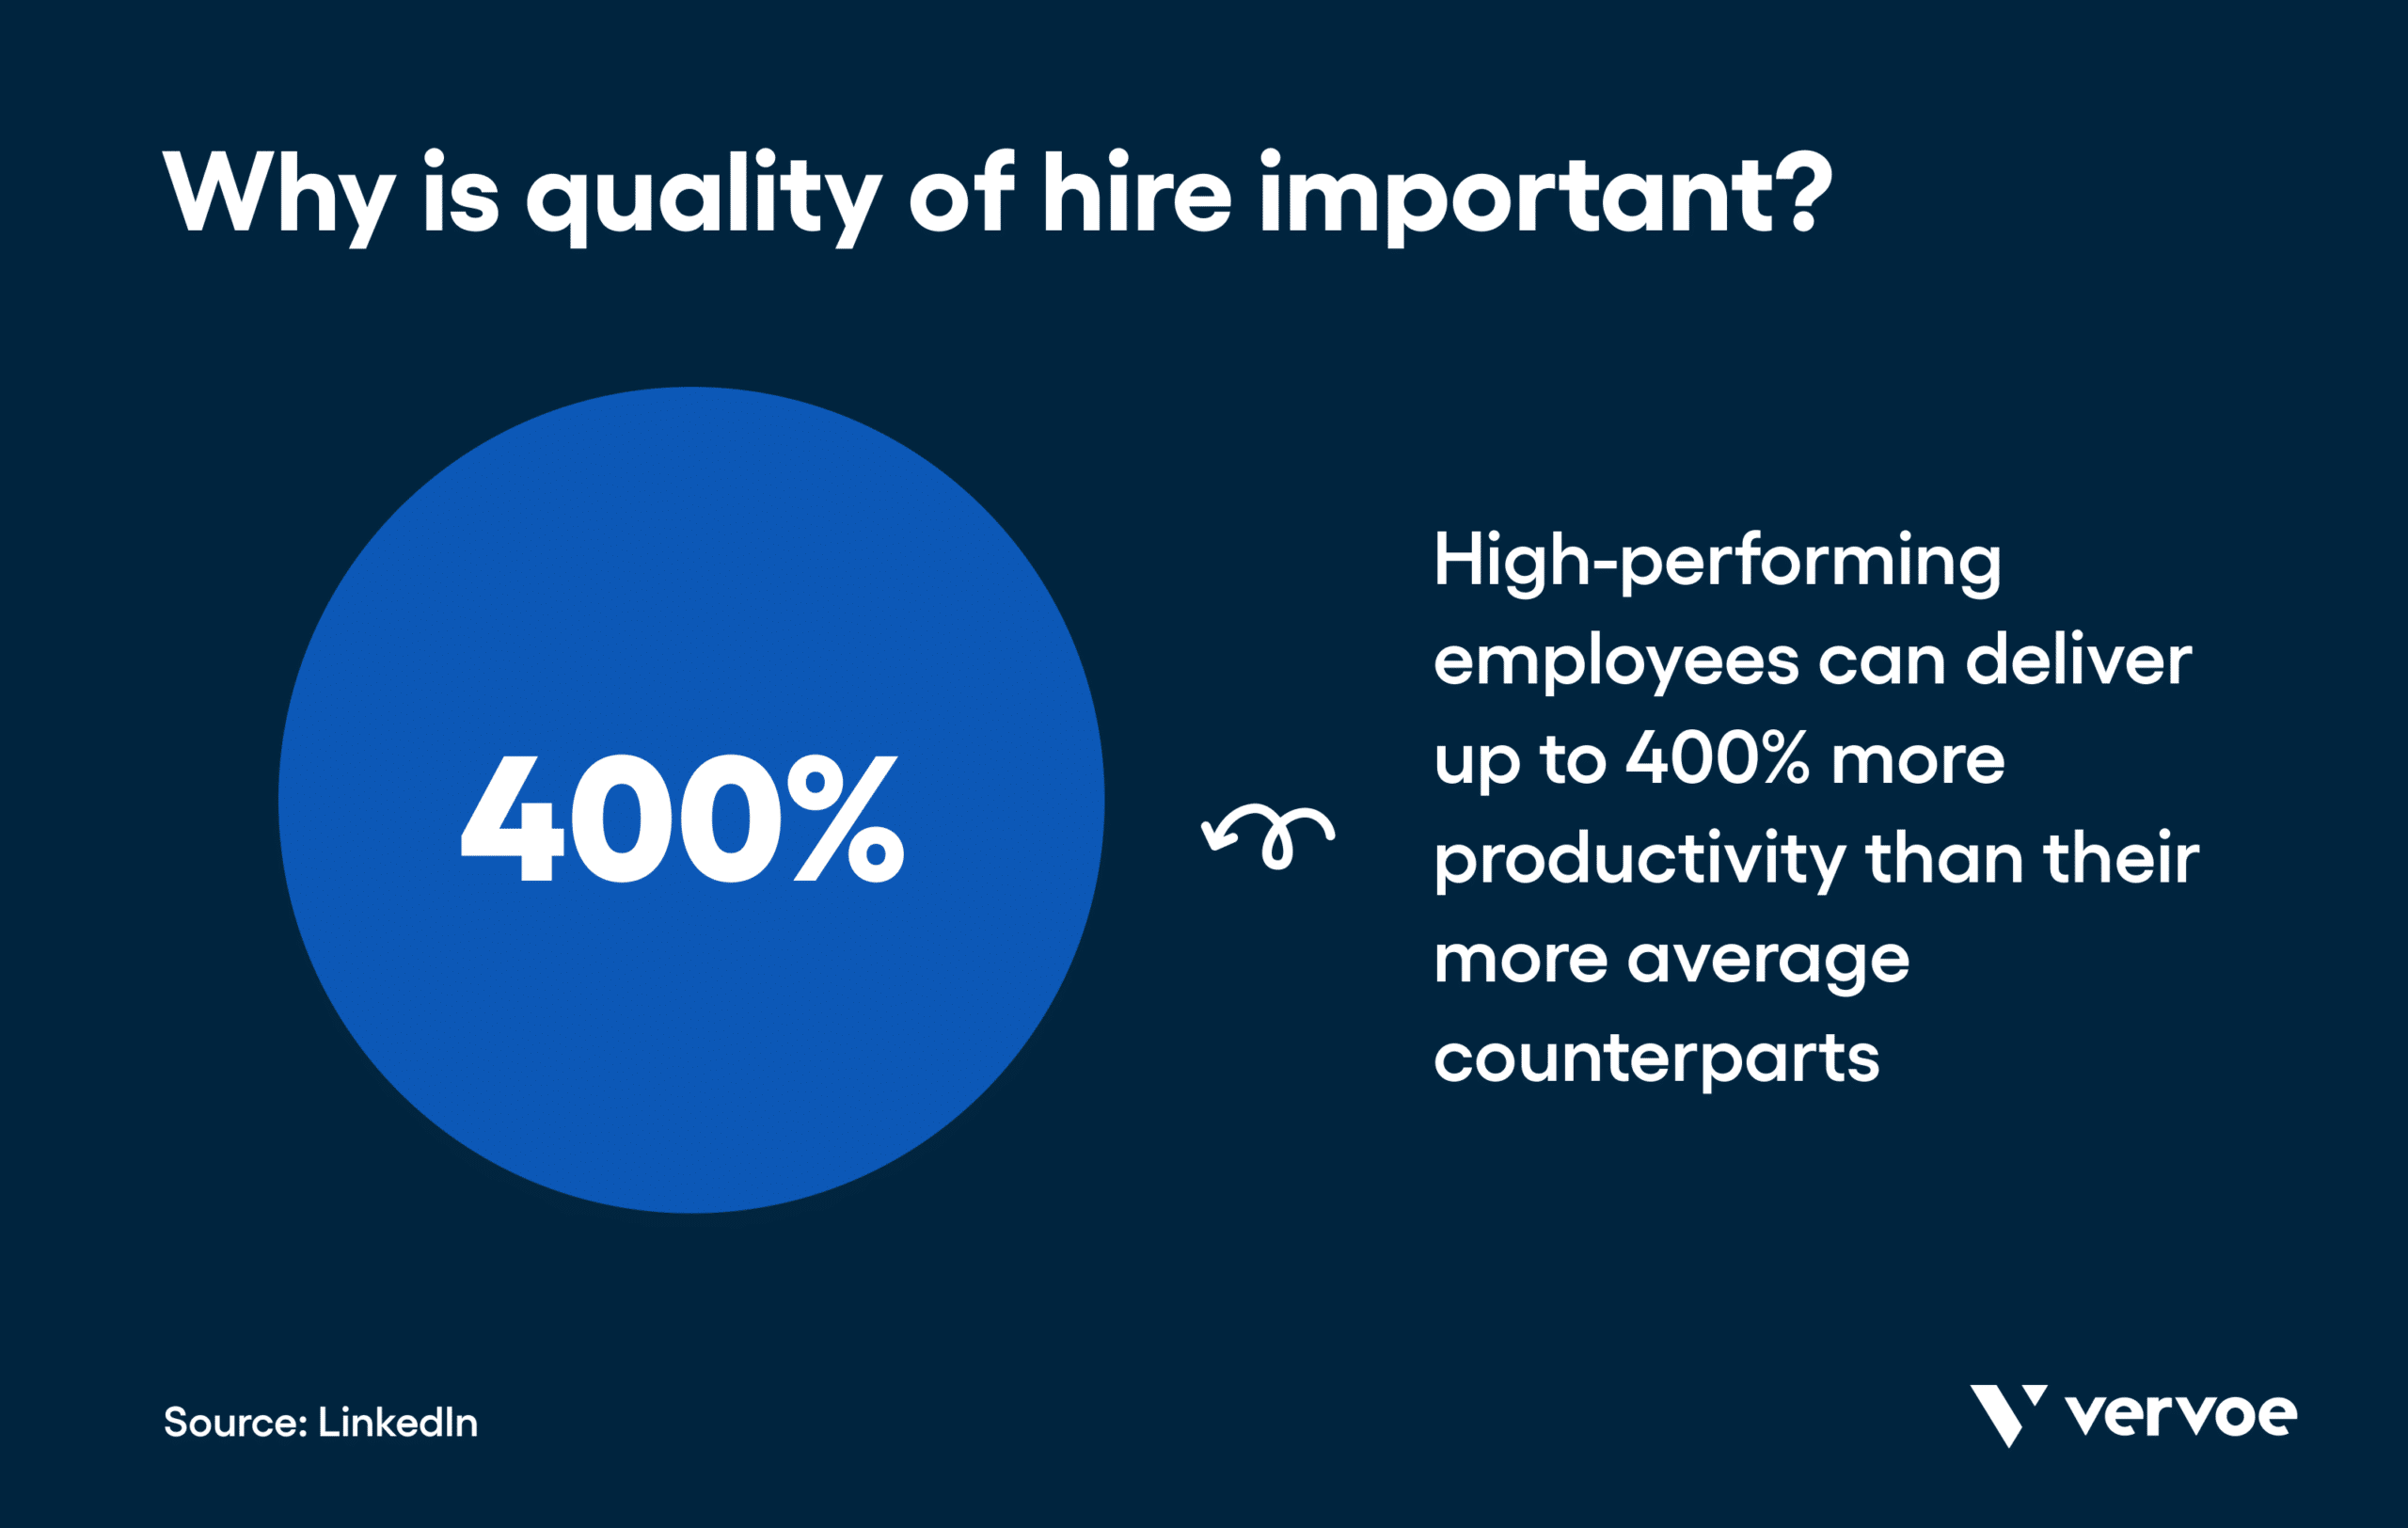 Infographic showing why quality of higher is important